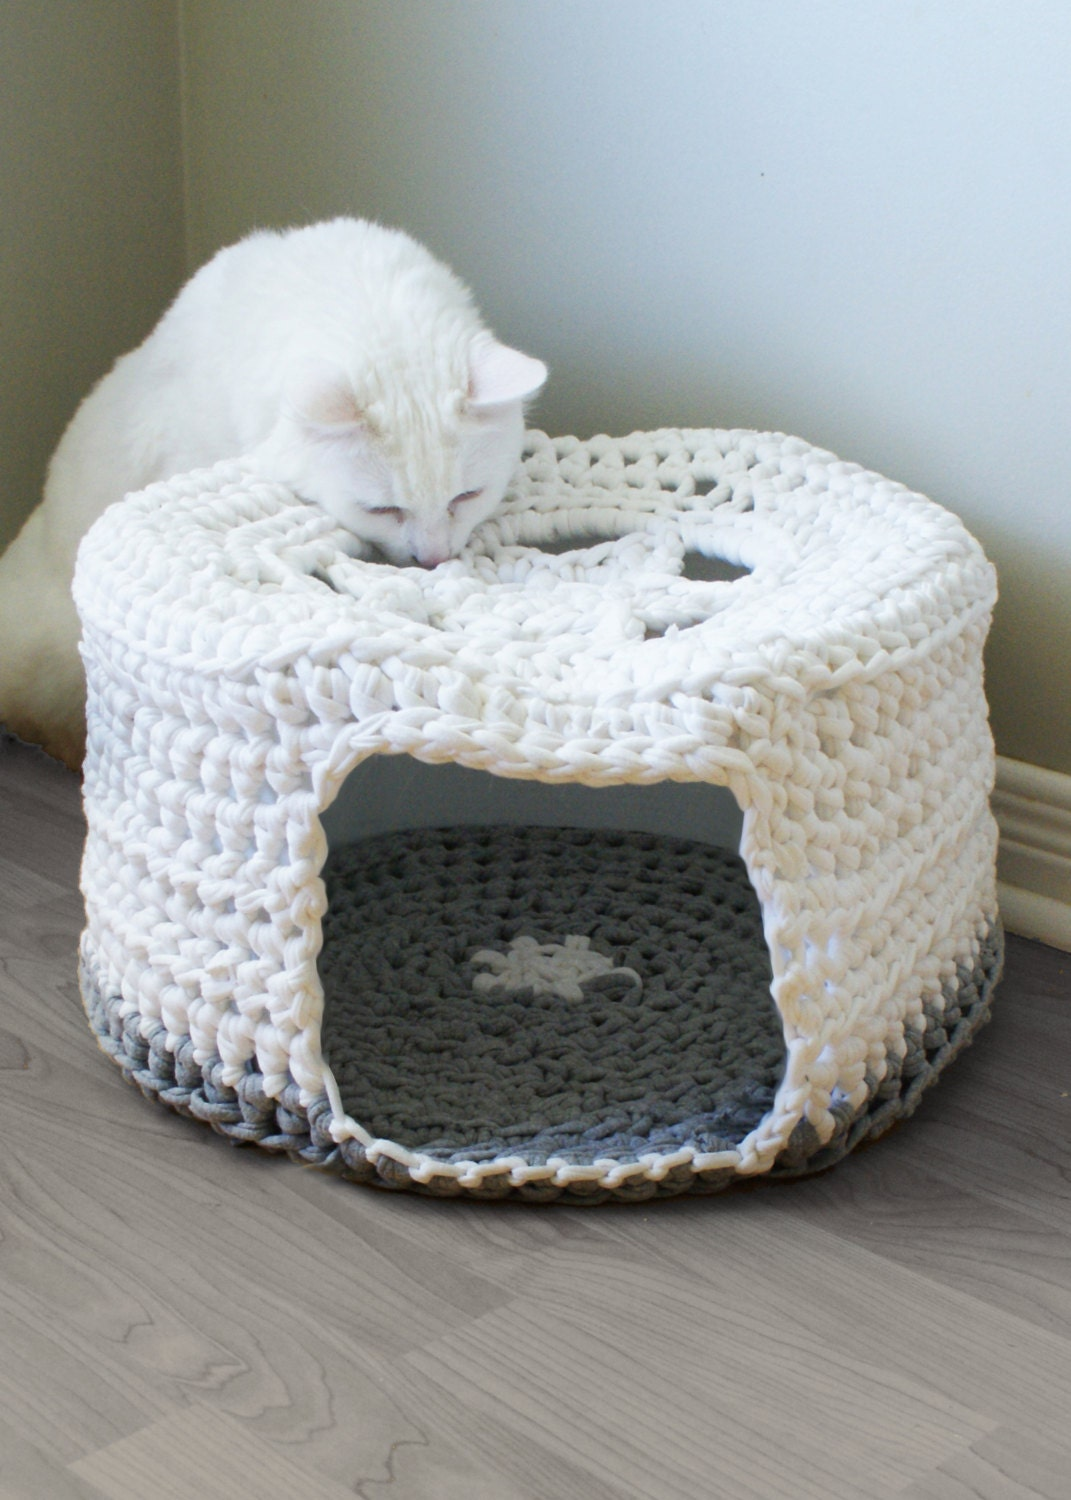 Crochet Patterns For T Shirt Yarn : DIY Crochet PATTERN Chunky T-shirt Yarn Pet Cave / Cat Bed